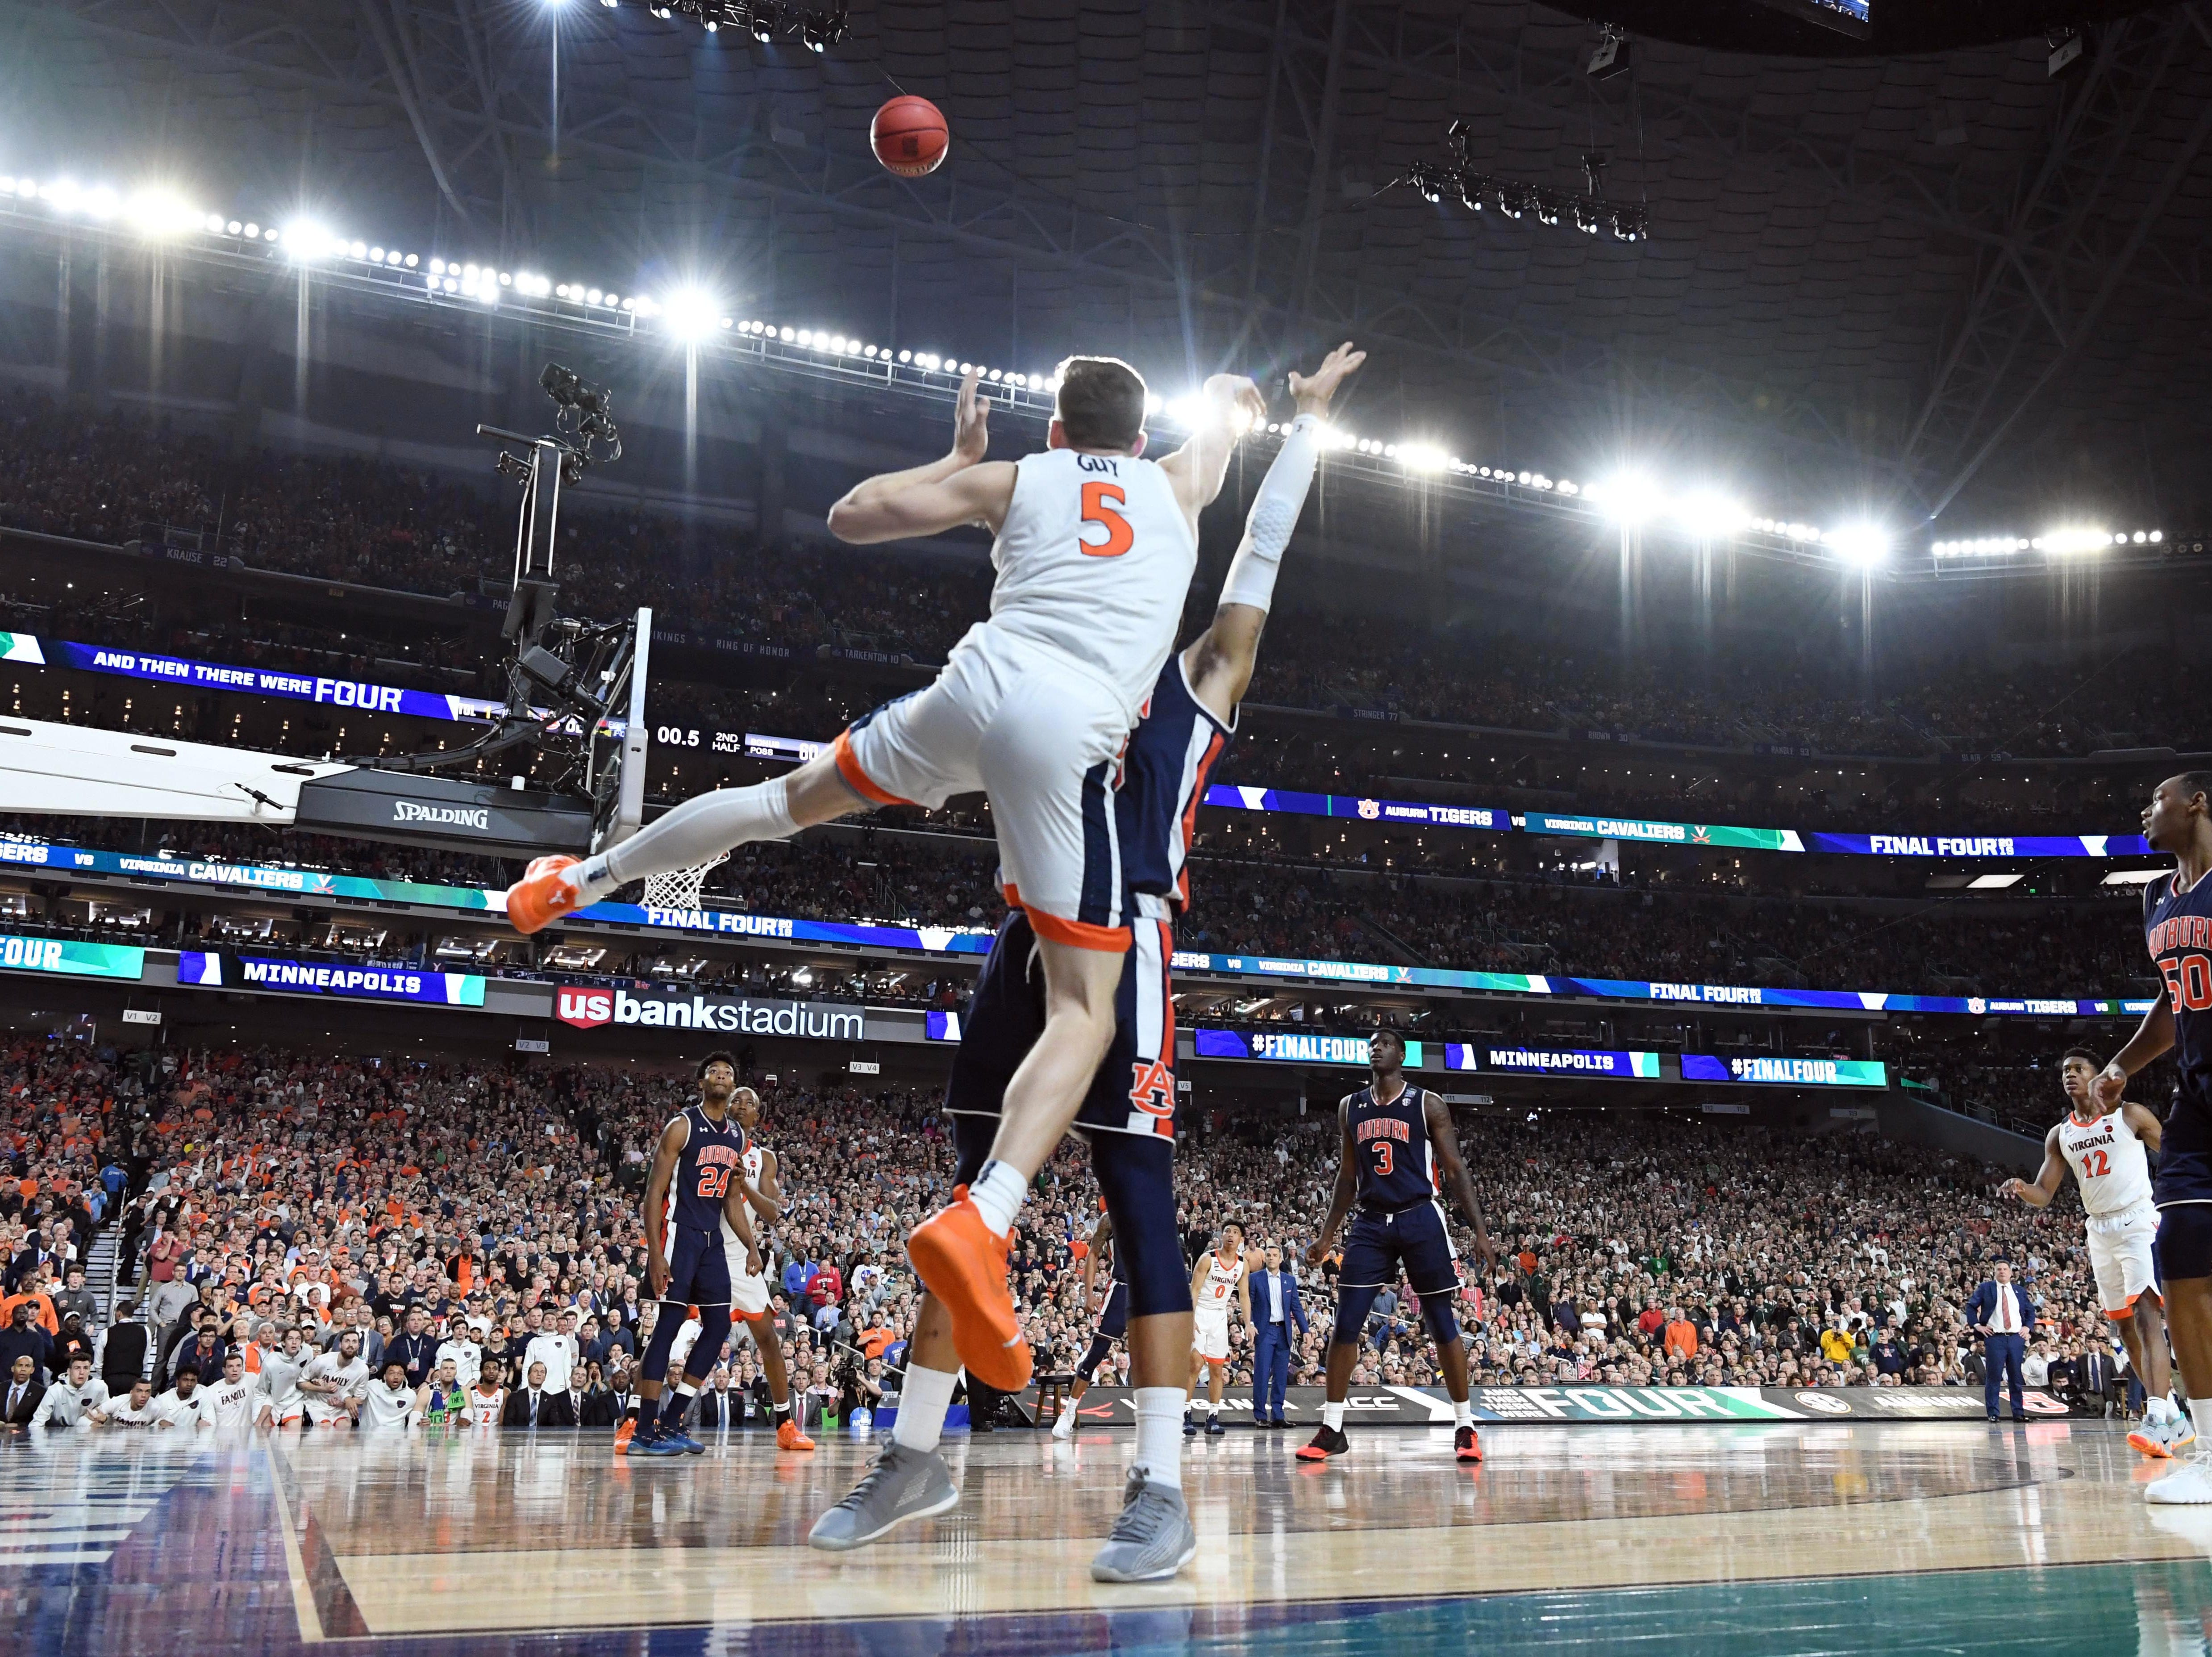 Virginia Cavaliers guard Kyle Guy (5) is fouled on a 3-pointer in the final seconds against the Auburn Tigers.